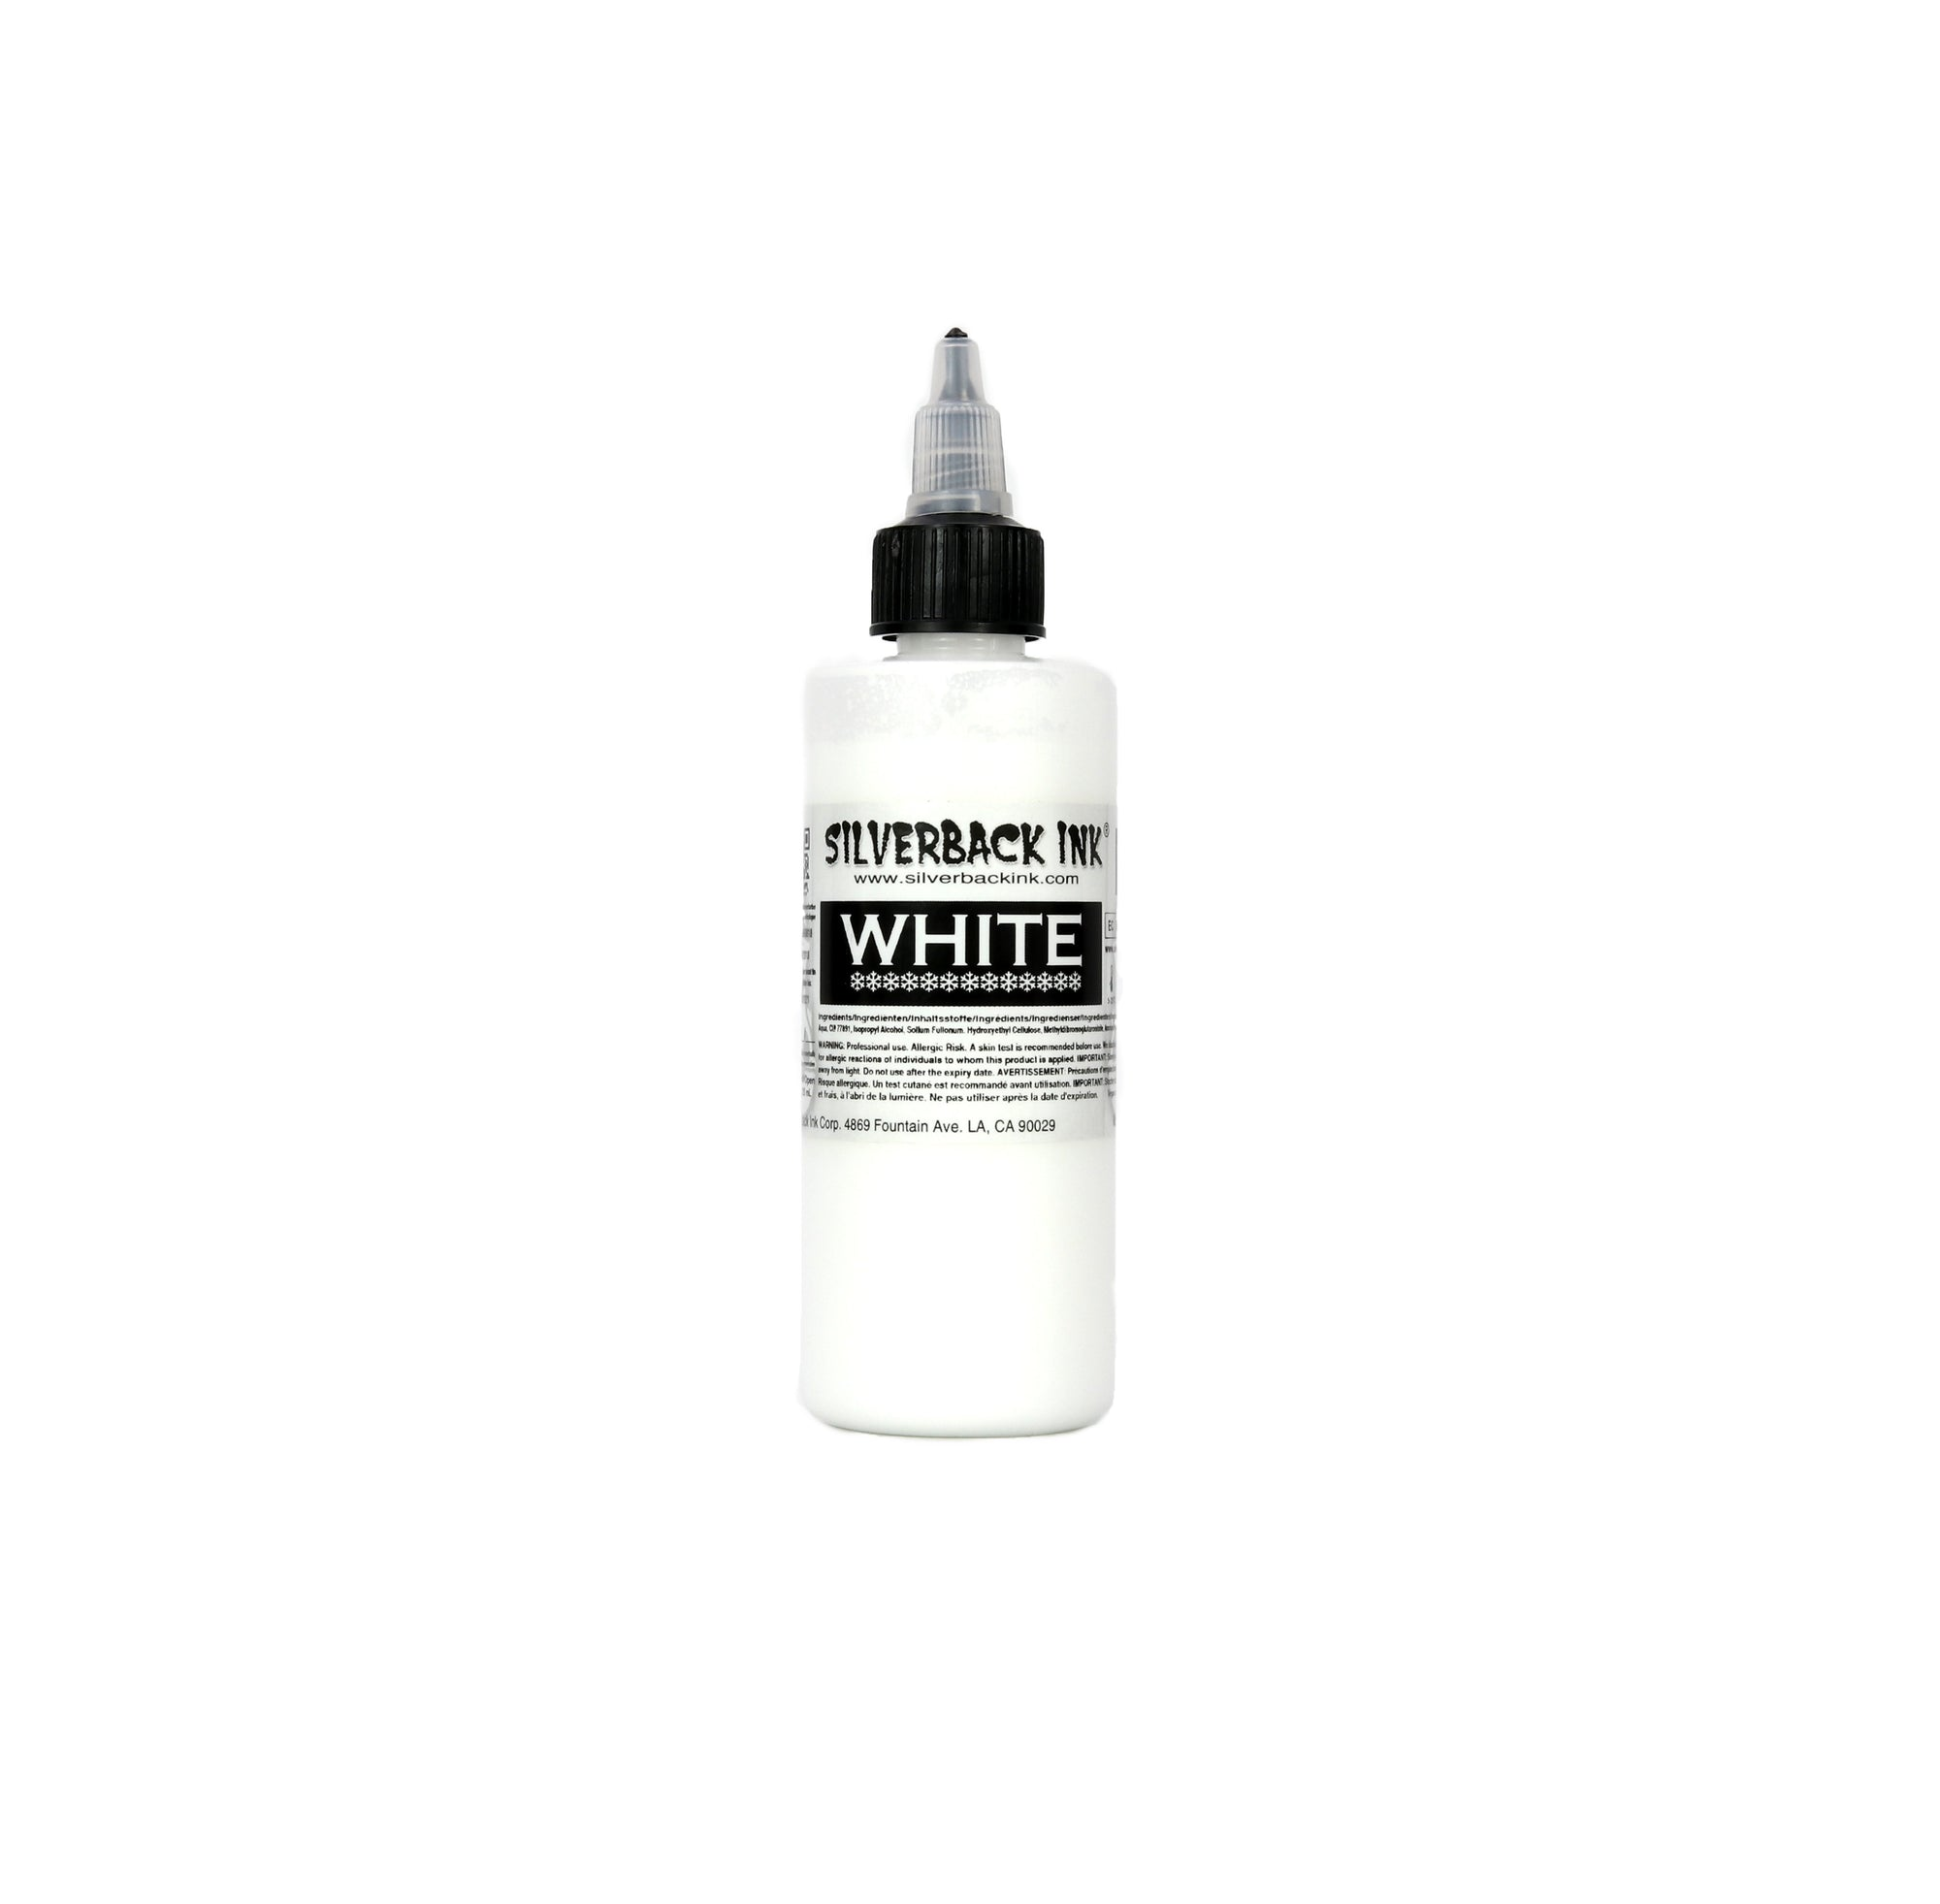 Silverback Ink White 4oz Bottle